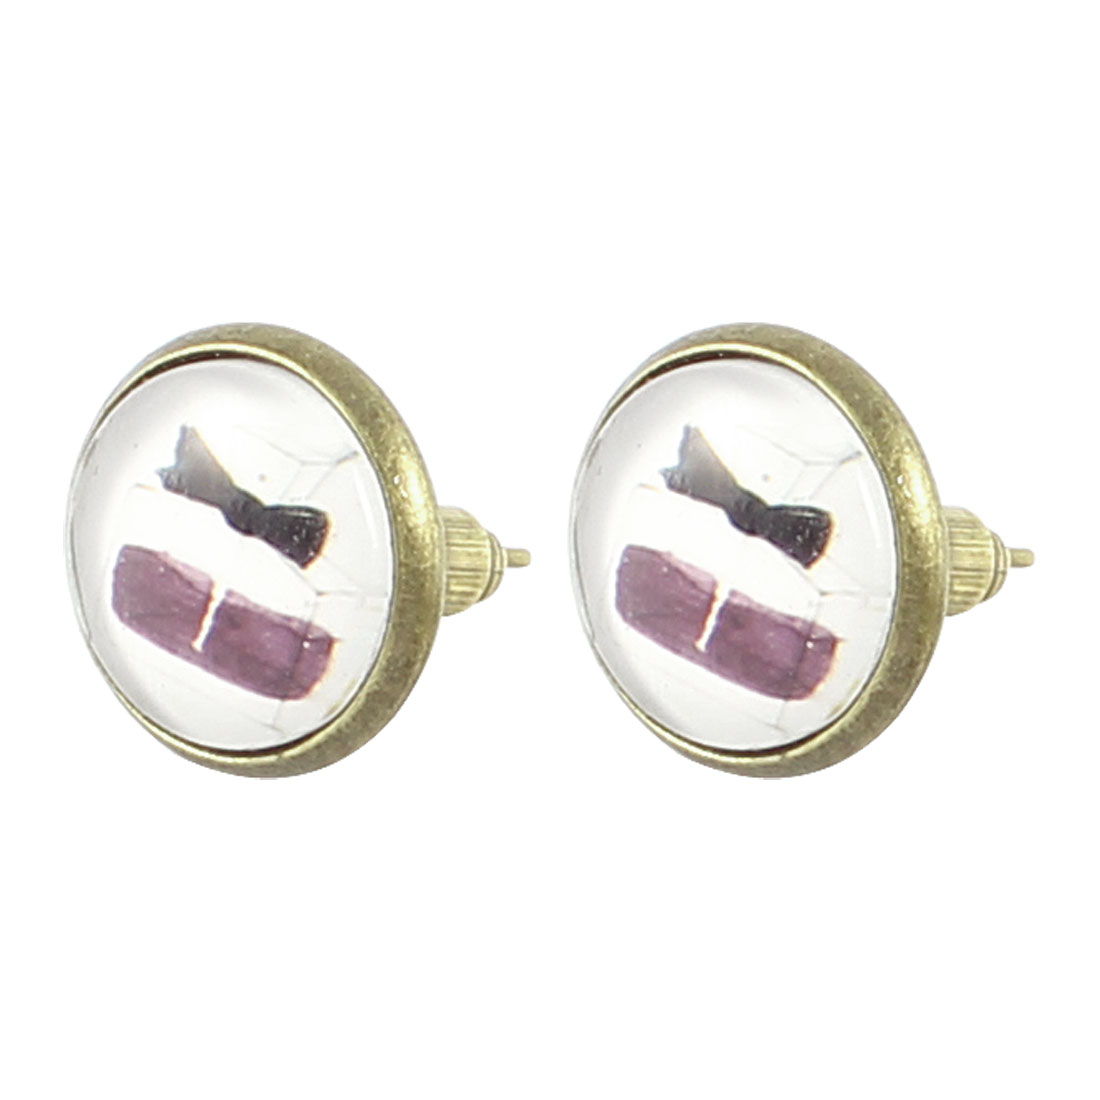 Pair Perfume Bottle Pattern Round Shape Stud Earrings Bronze Tone Decoration